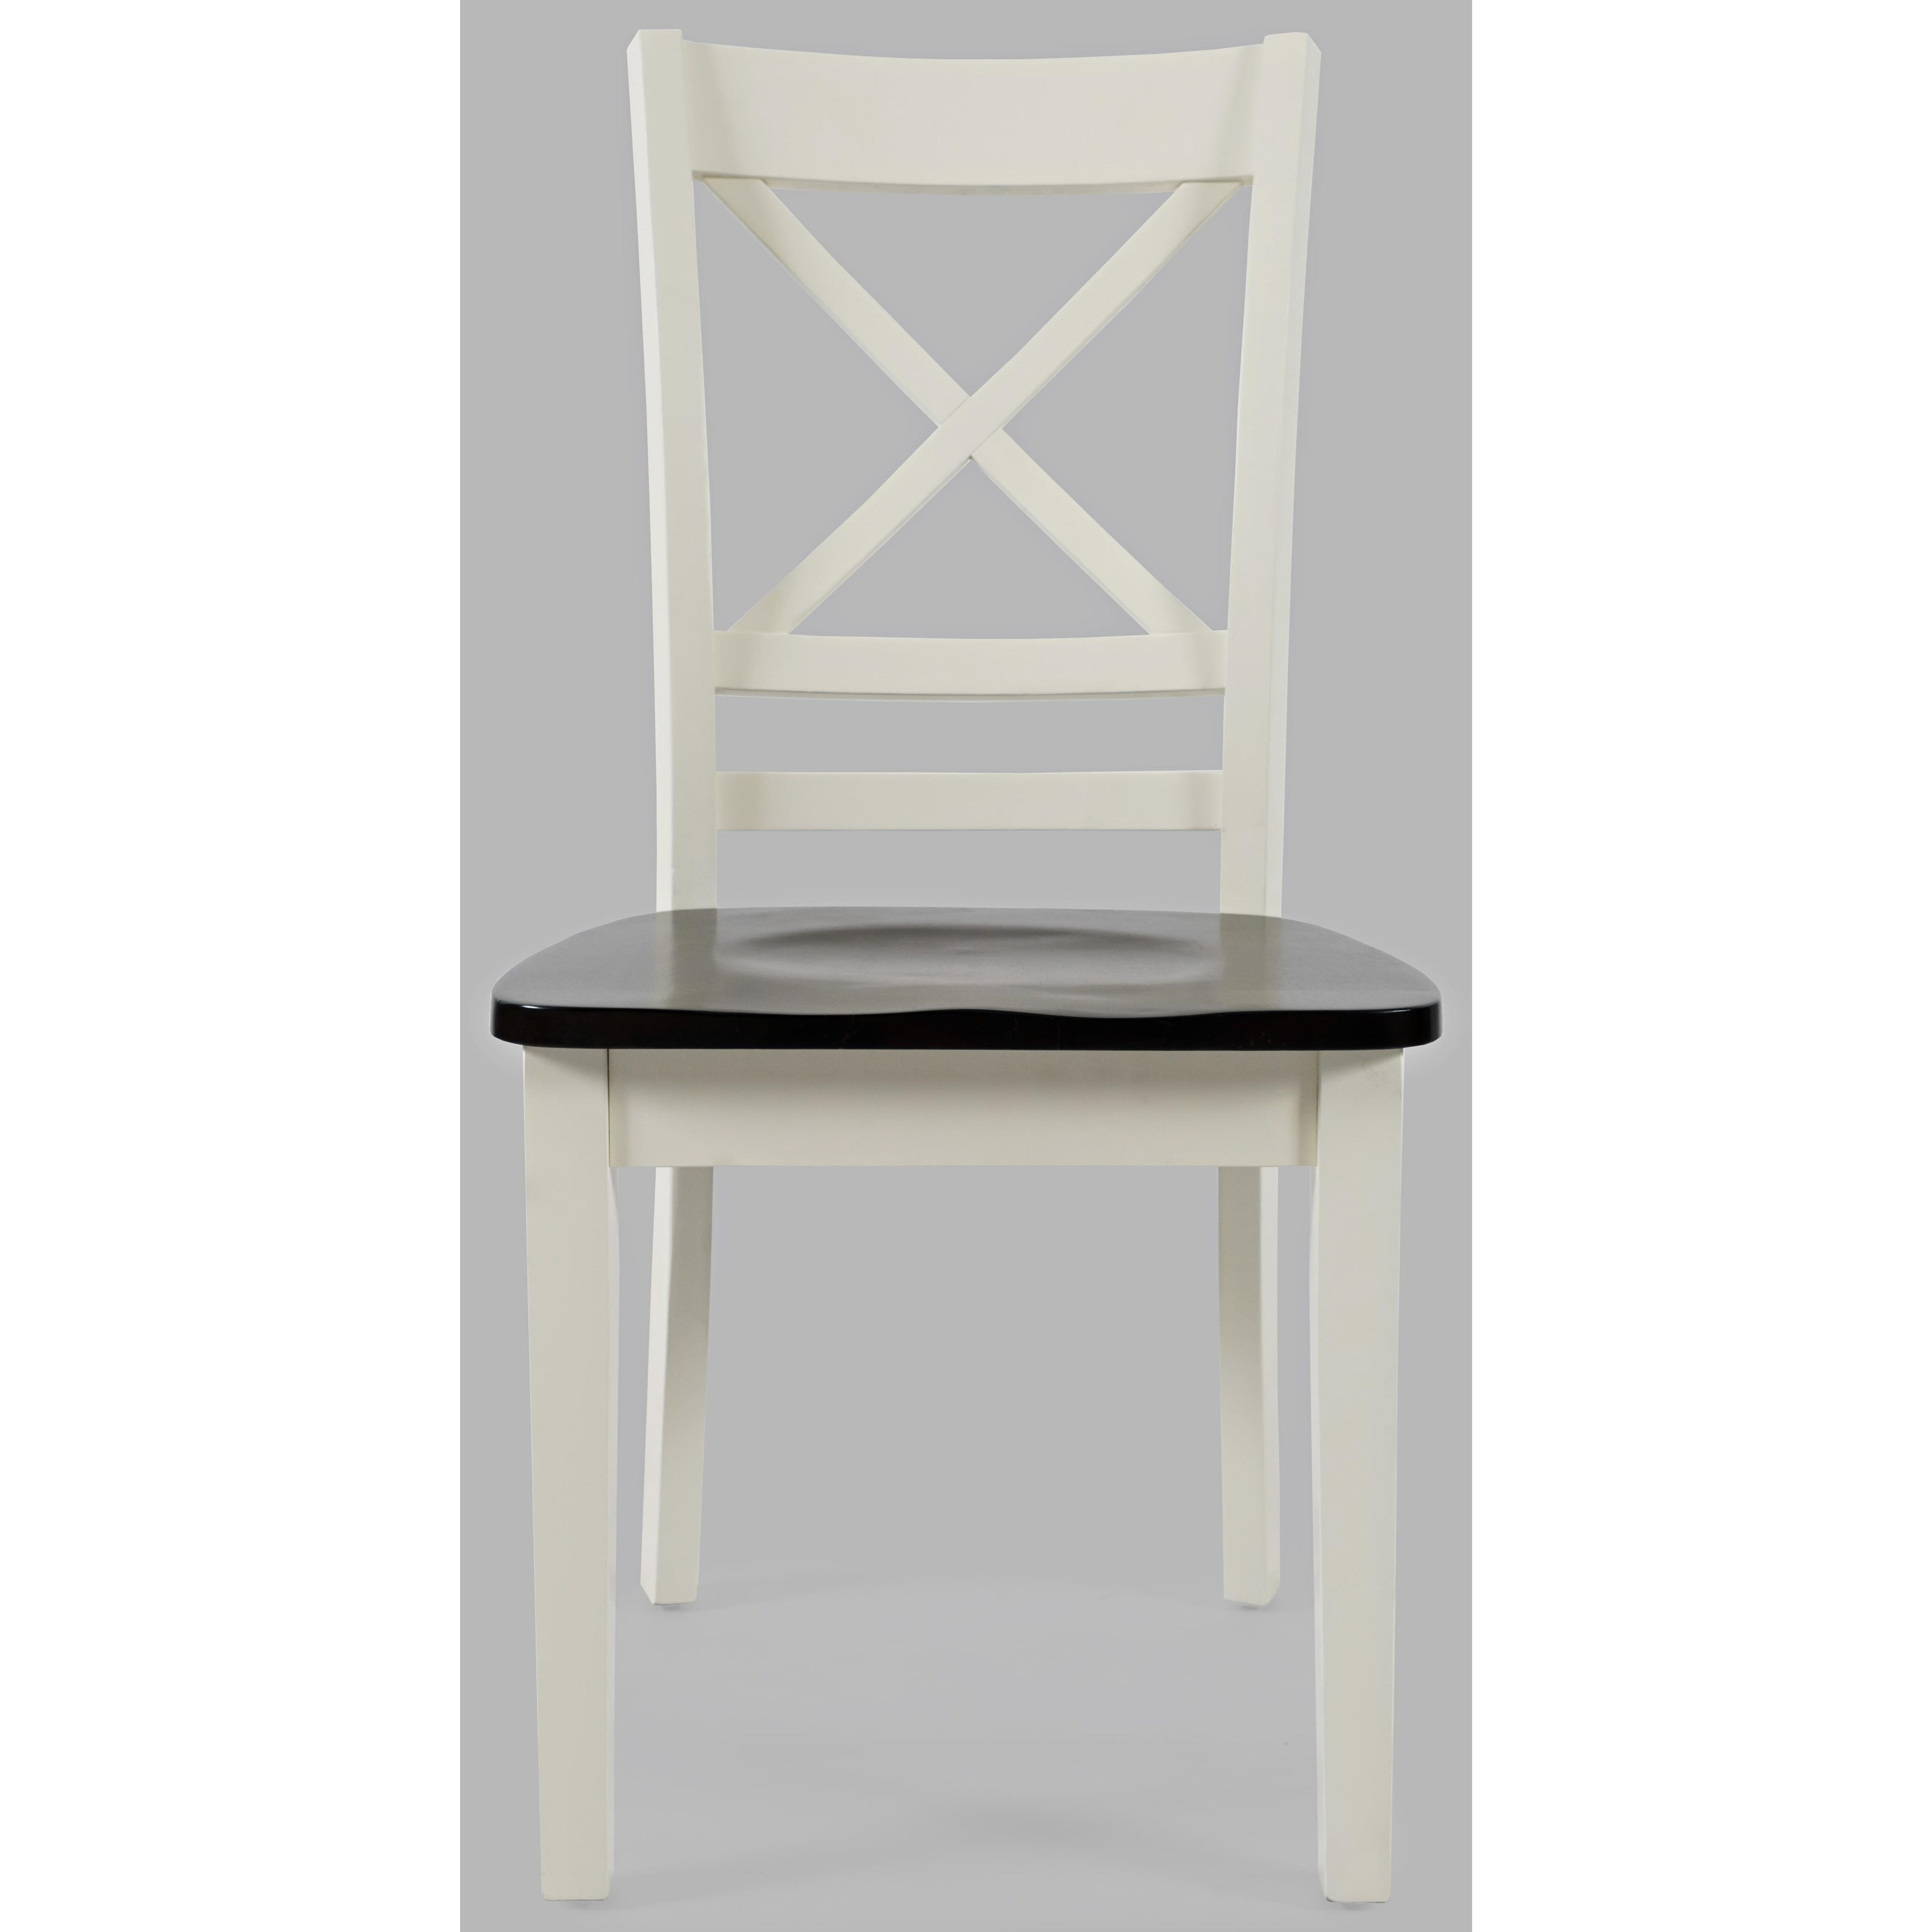 Asbury Park X-Back Chair  by Jofran at Simply Home by Lindy's